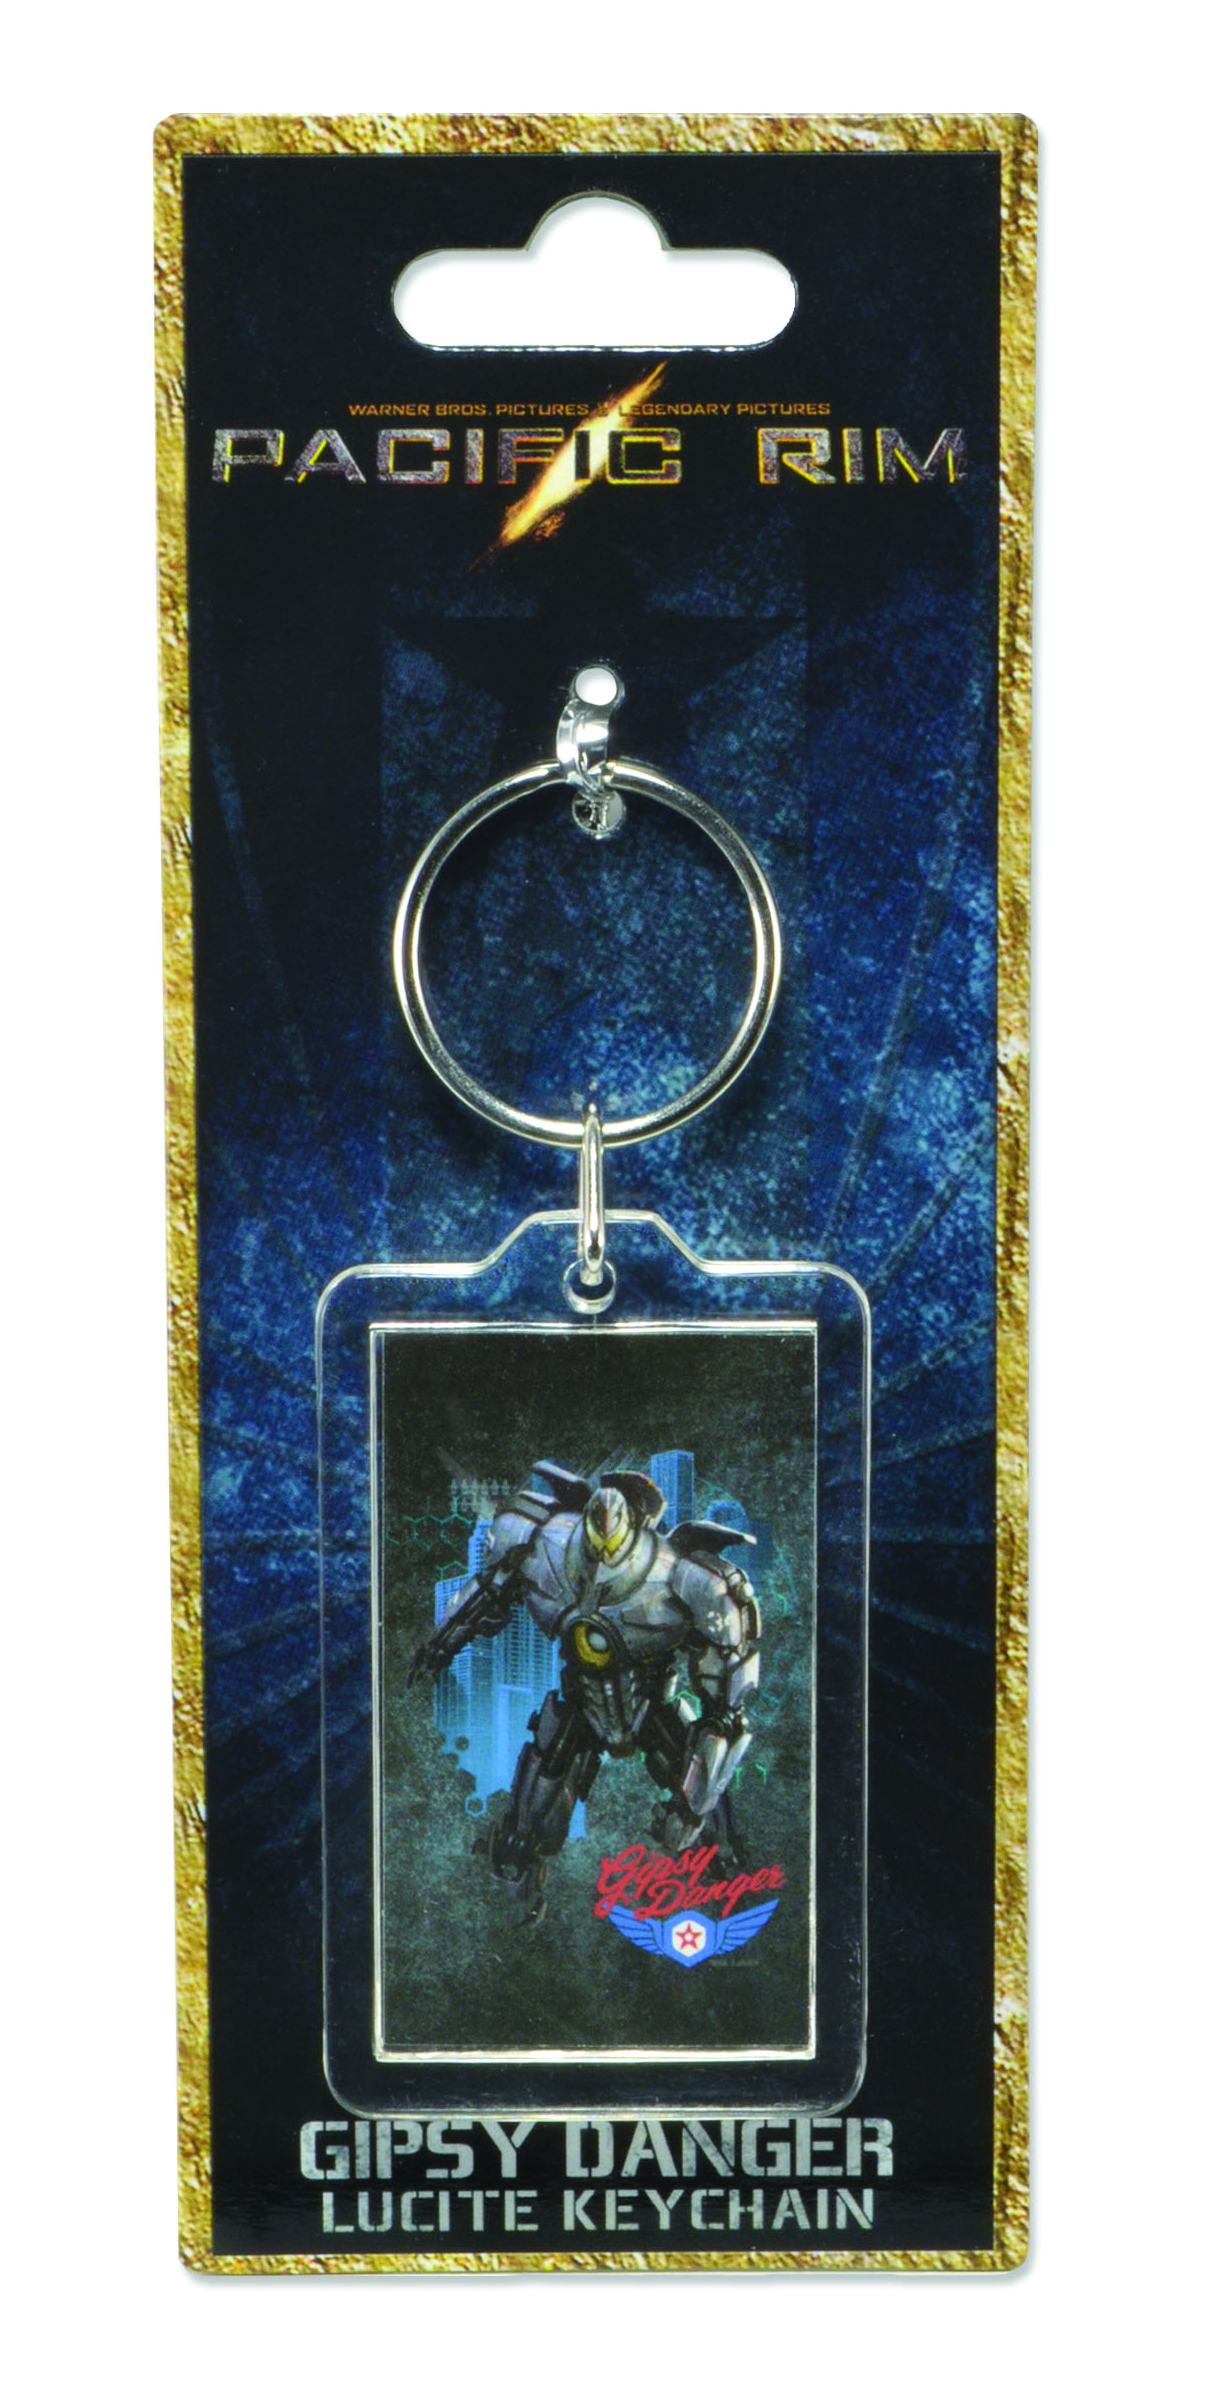 PACIFIC RIM GIPSY DANGER LUCITE KEYCHAIN